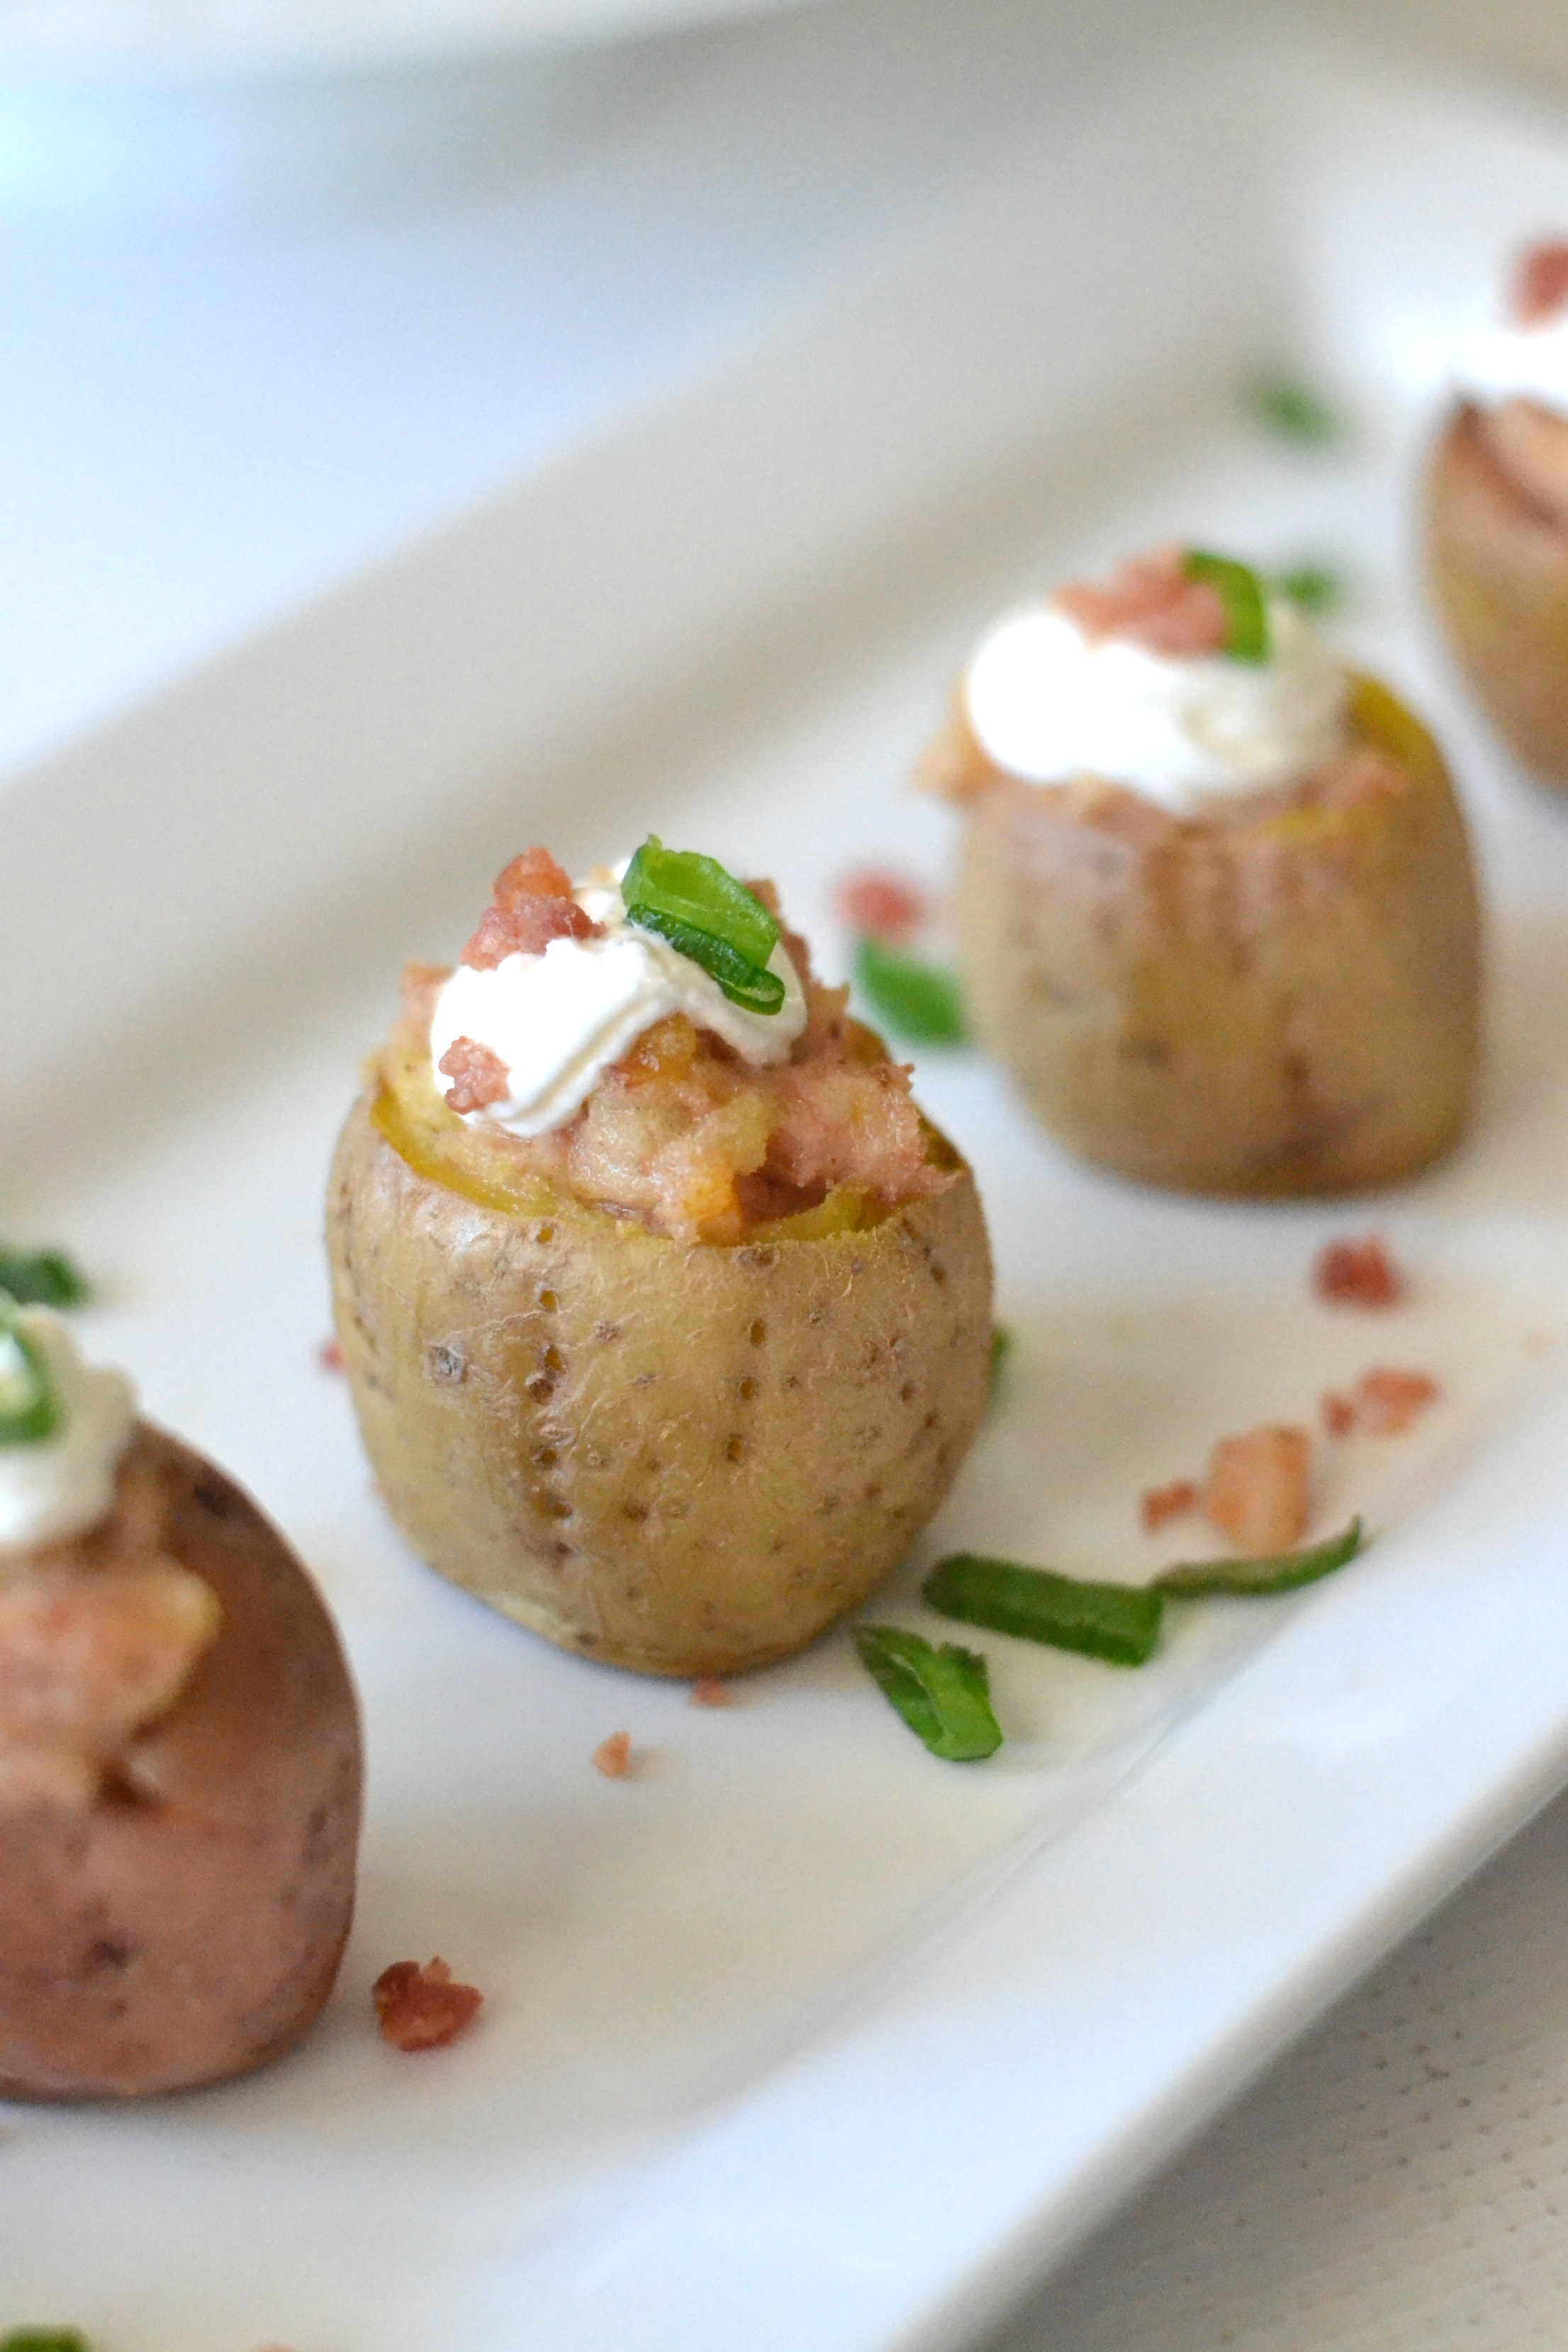 Irish Twice Baked Potato Bites